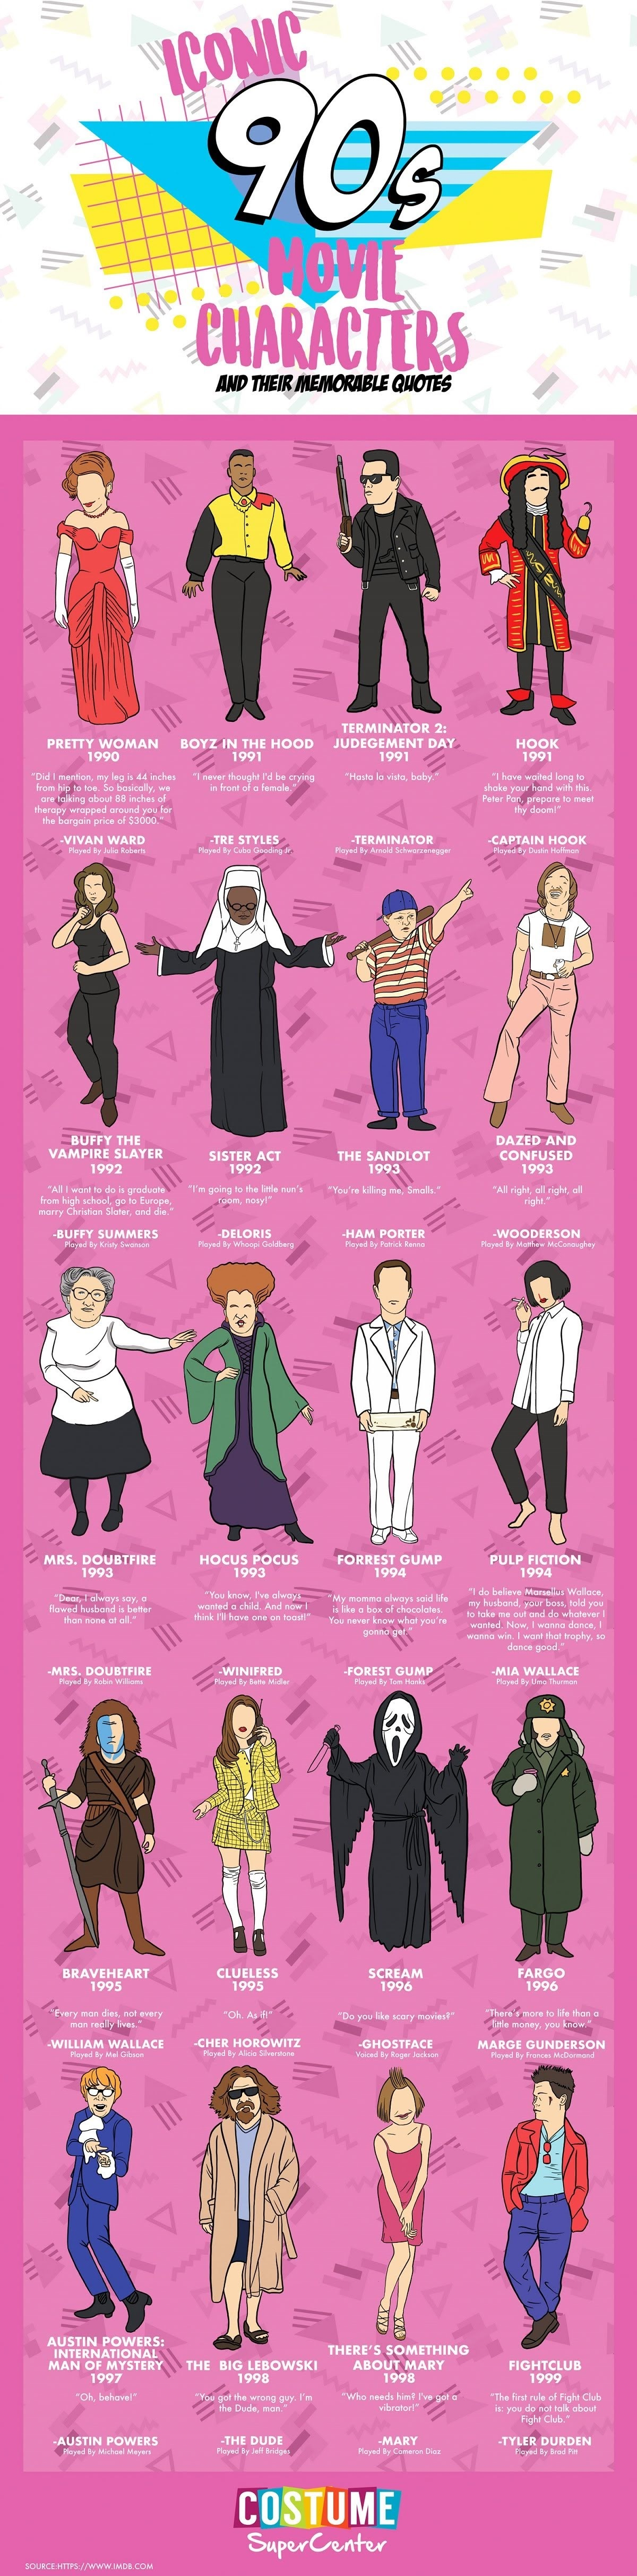 The Best Movie Quotes from the '90s #infographic